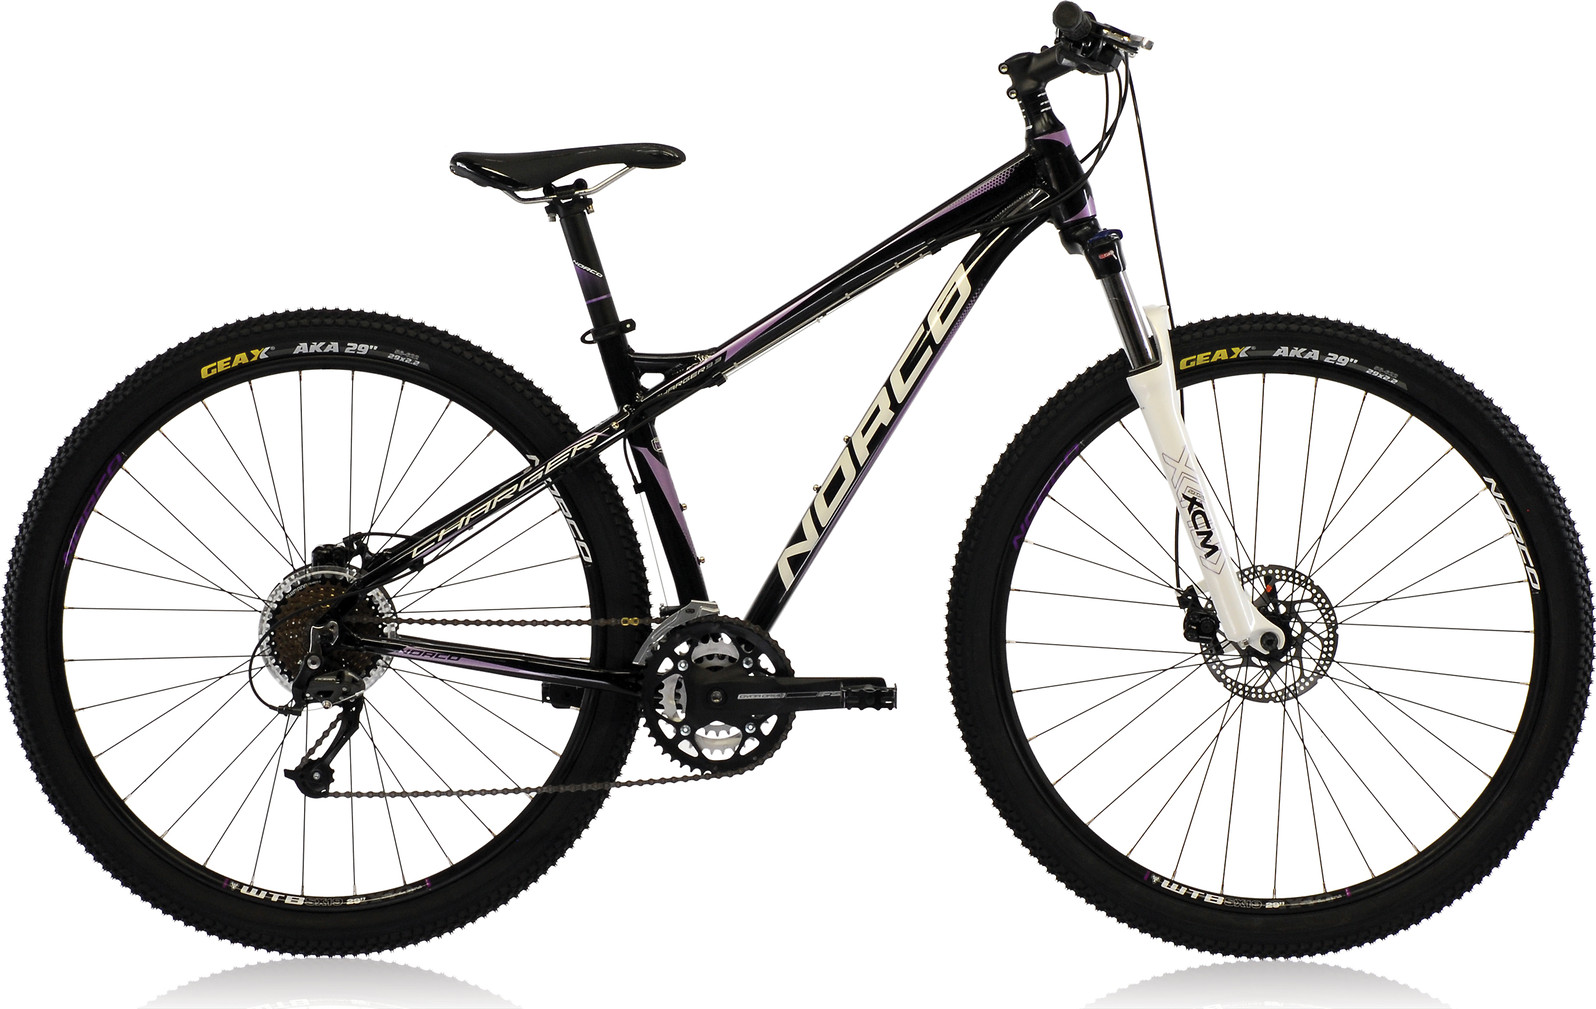 2013 Norco Charger 9.3 Forma Bike charger-93-forma-1